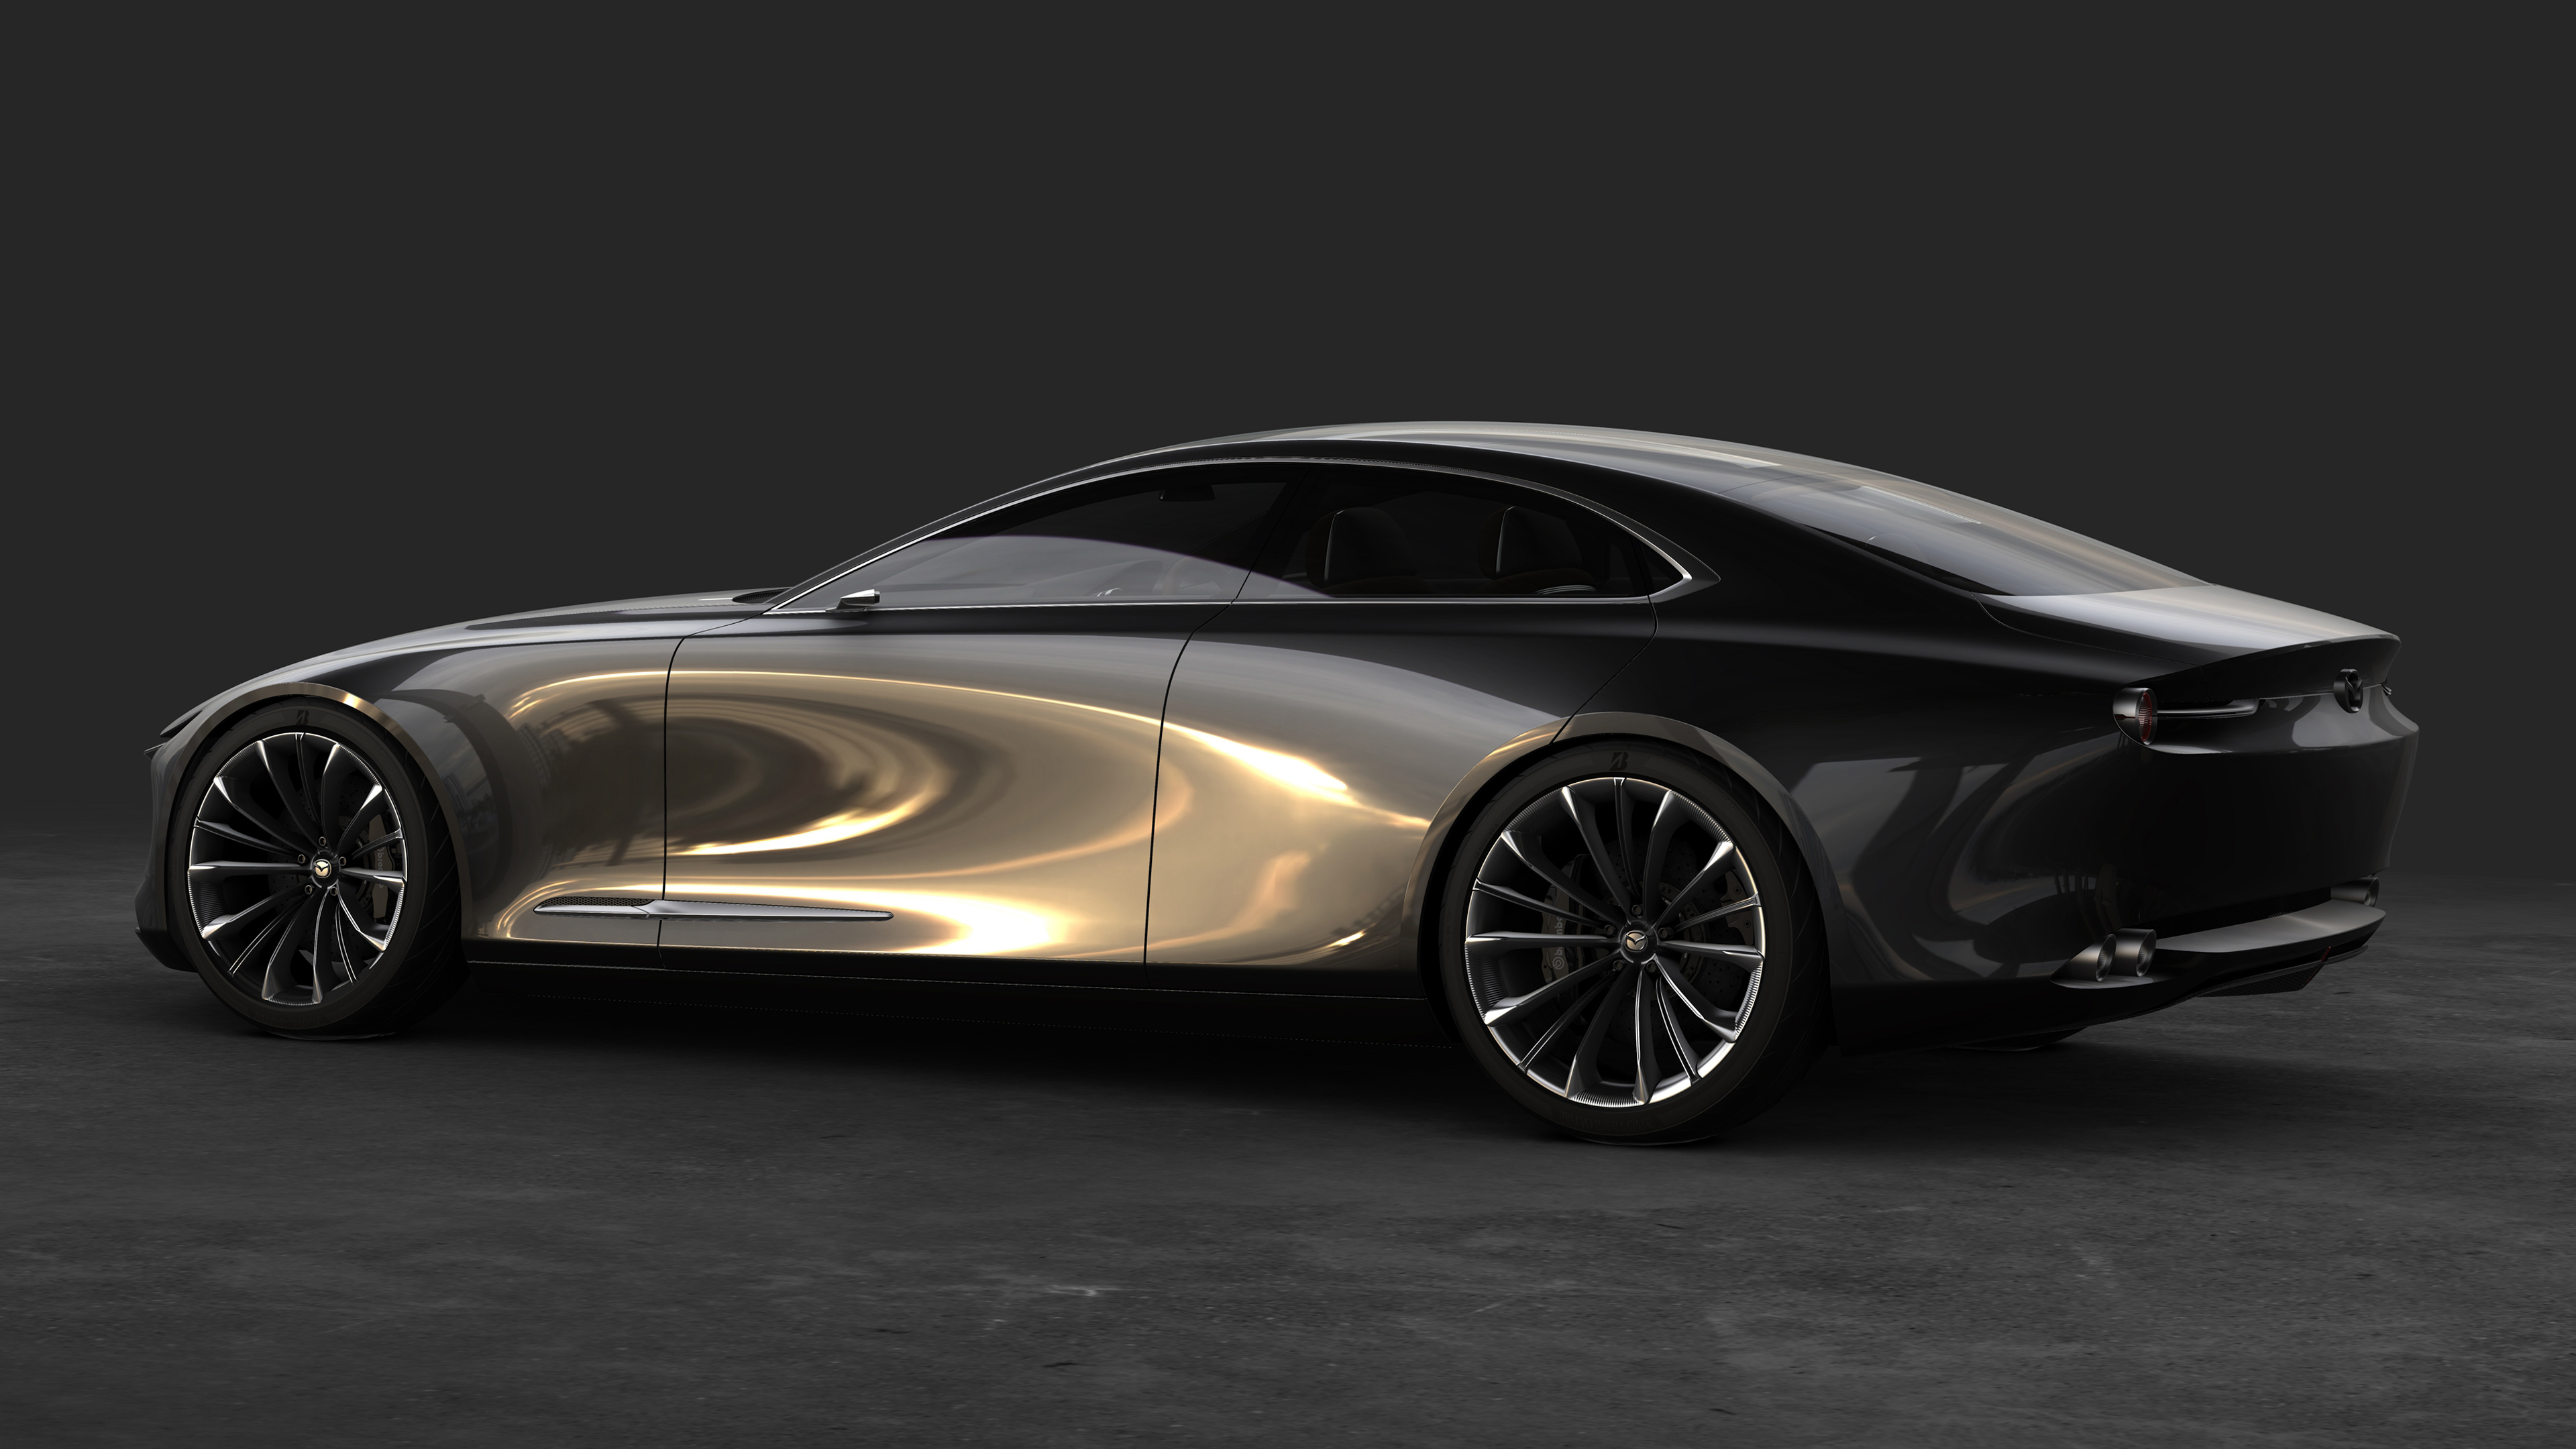 Mazda Vision Coupe Concept 4K Wallpaper | HD Car ...